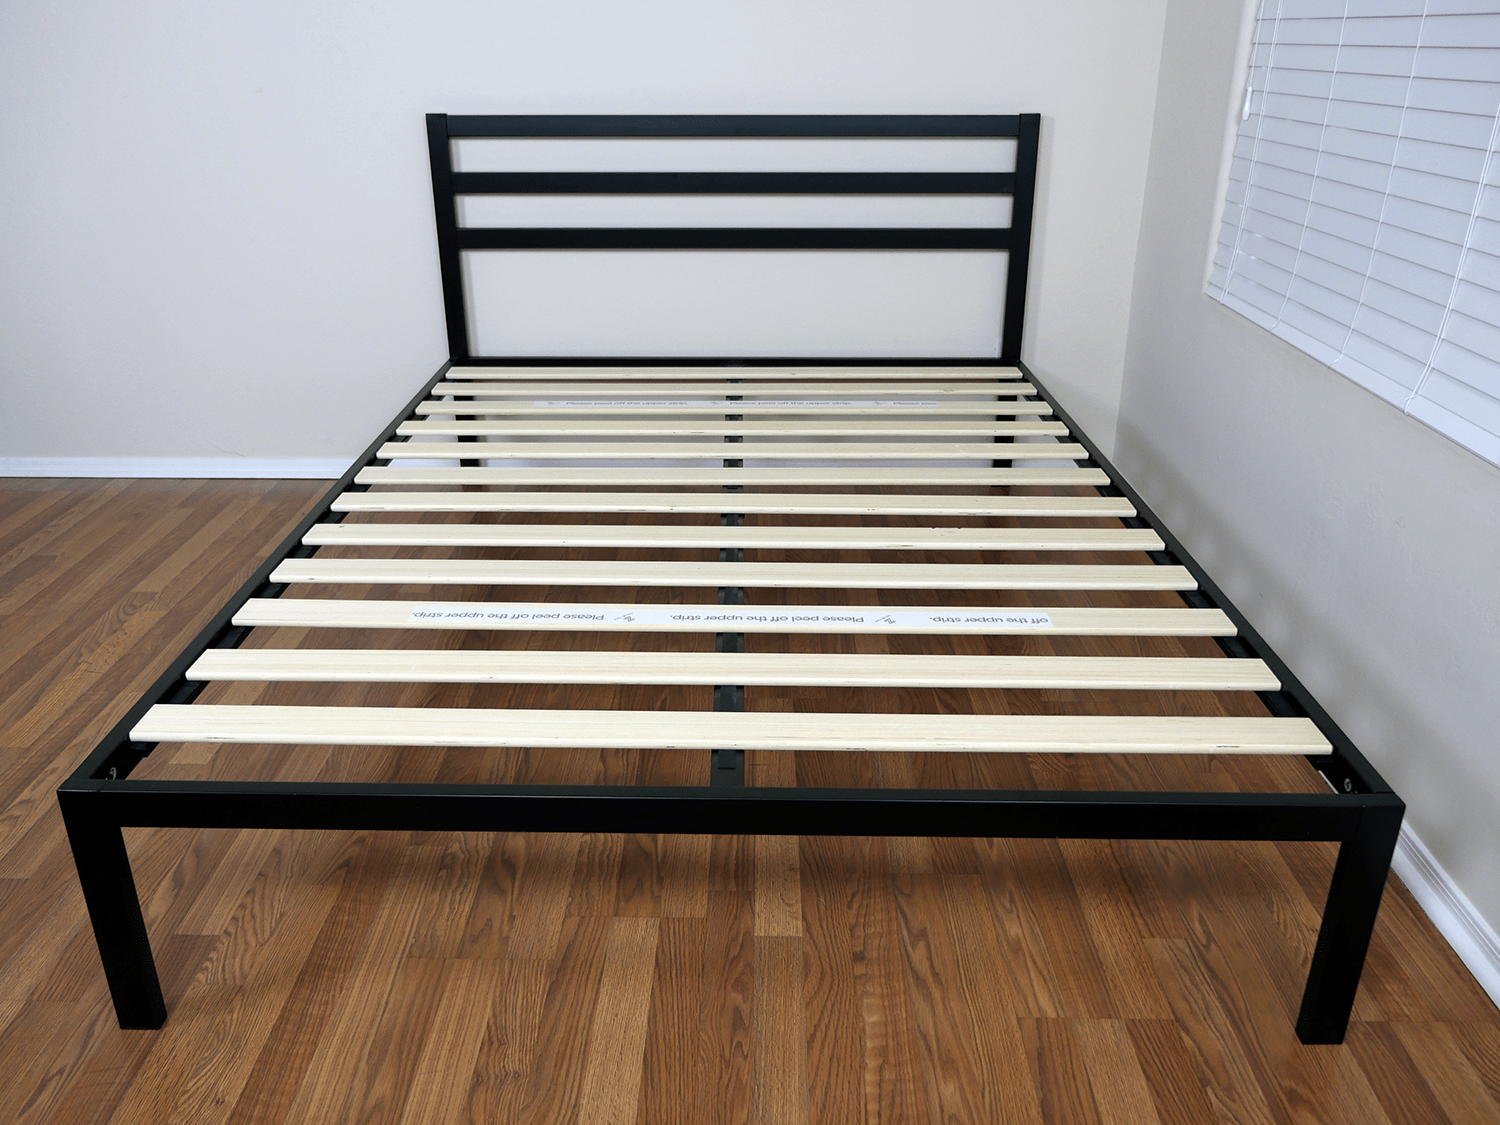 Zinus Platform Bed Review Sleepopolis